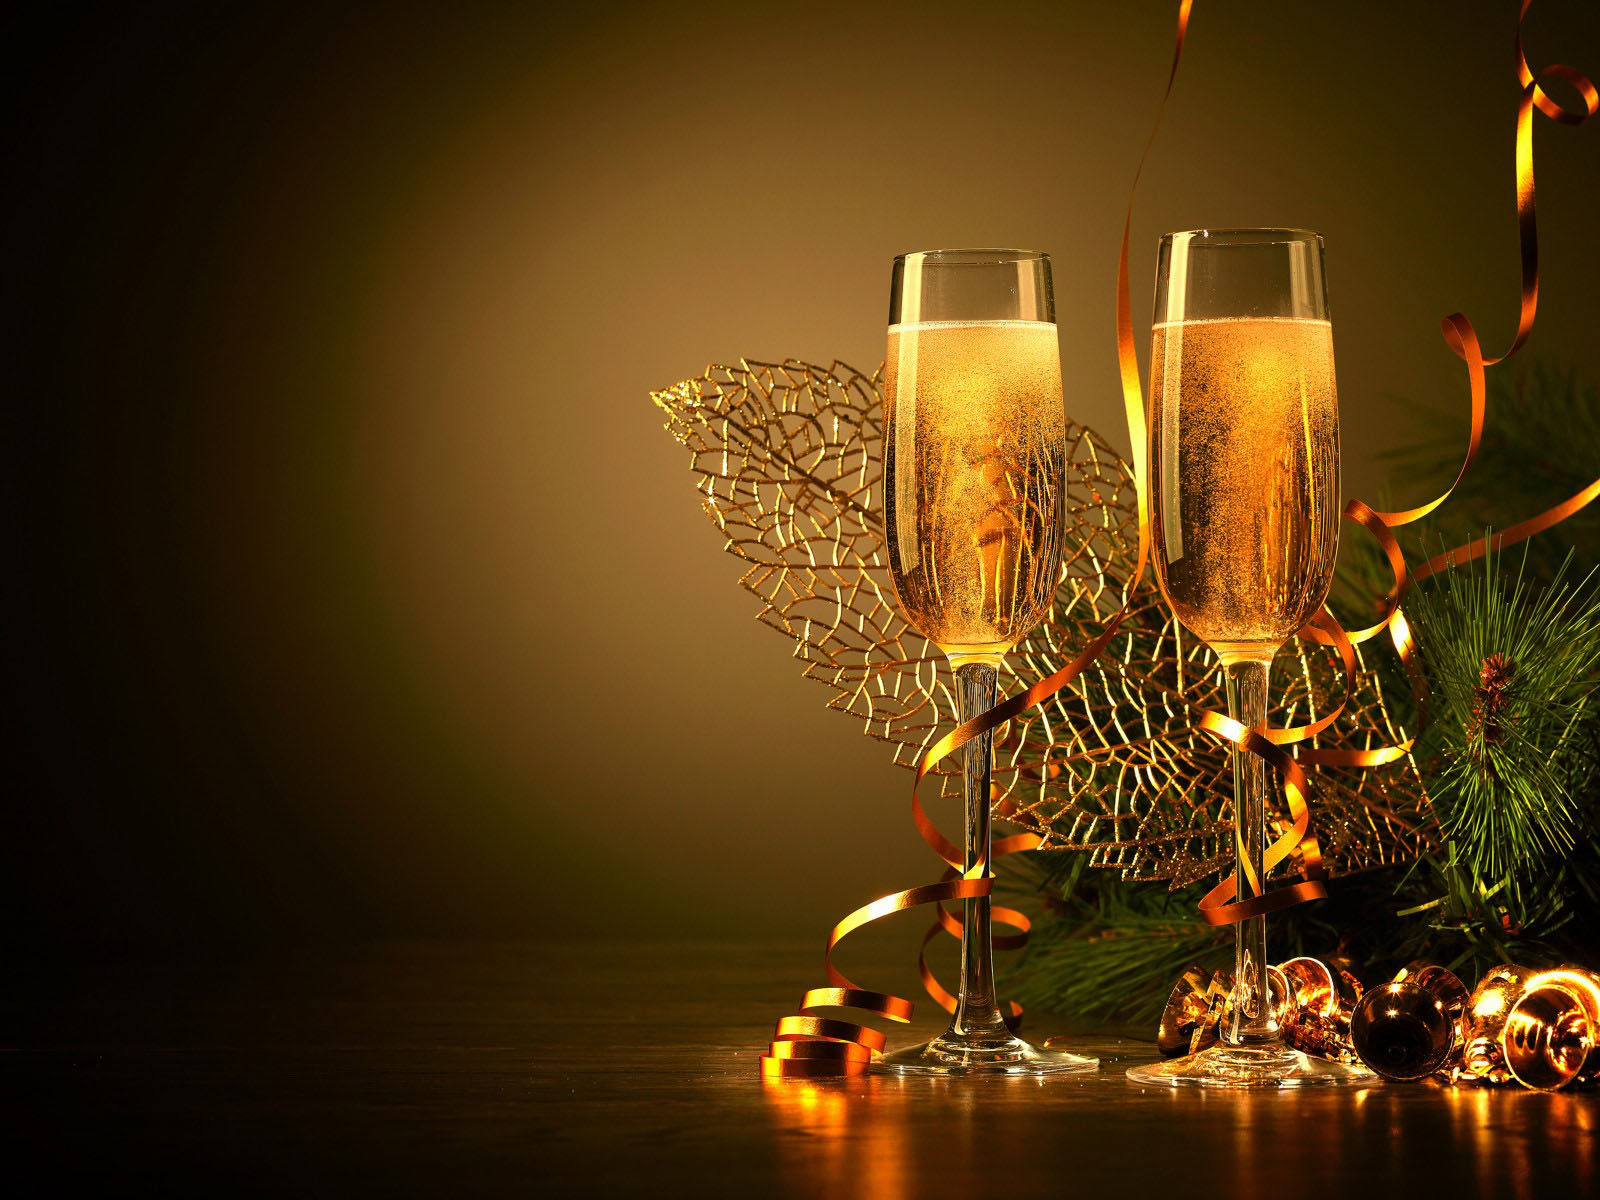 Year 2016 Desktop Background Wallpapers Themes Happy New Year 2016 1600x1200